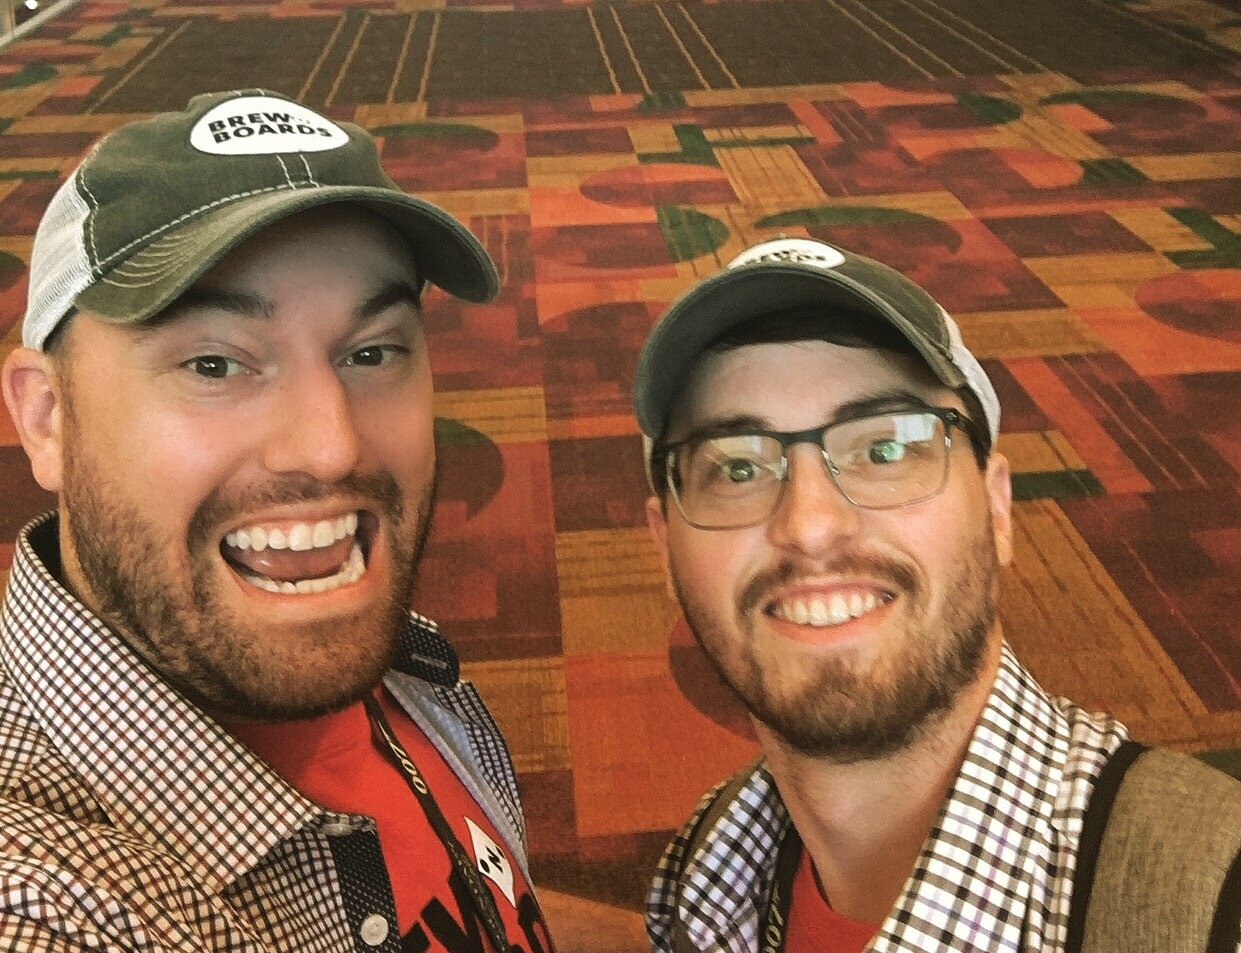 Richard Bray (left) and Robert Bray (right) at GenCon in Indianapolis, IN - August 3rd, 2019